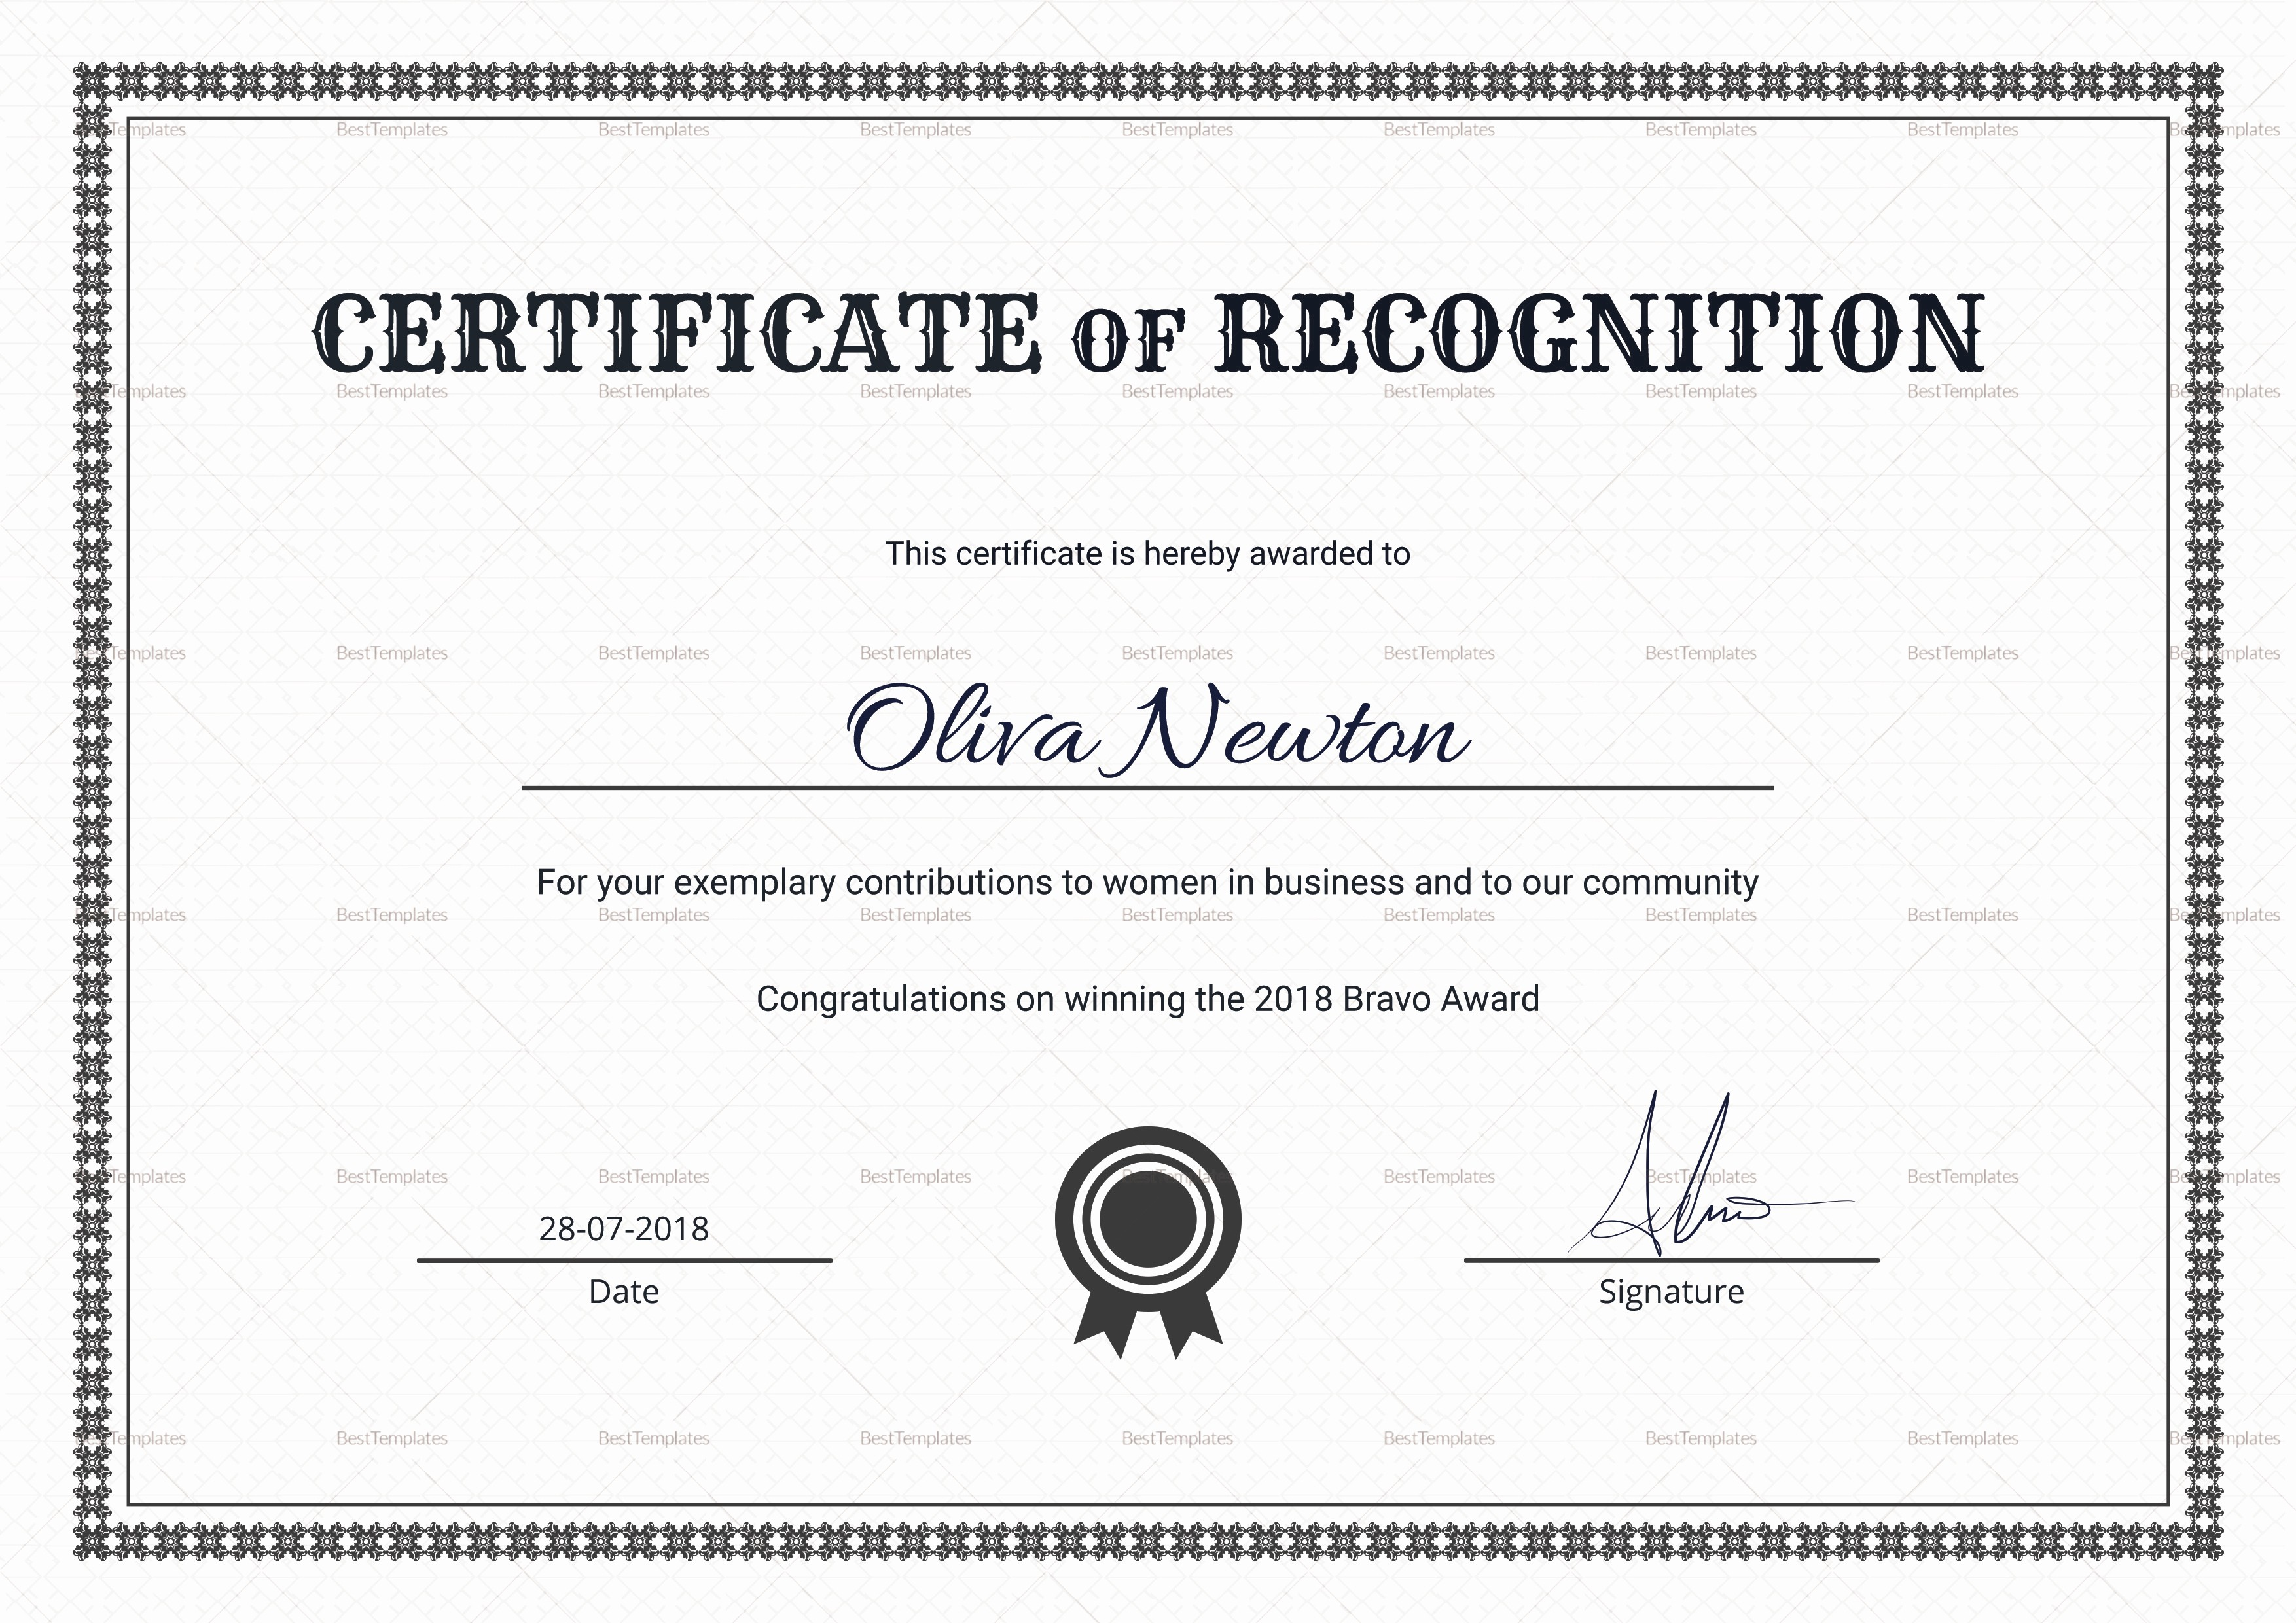 Certificate Of Recognition Template Word Inspirational Simple Certificate Of Recognition Design Template In Psd Word